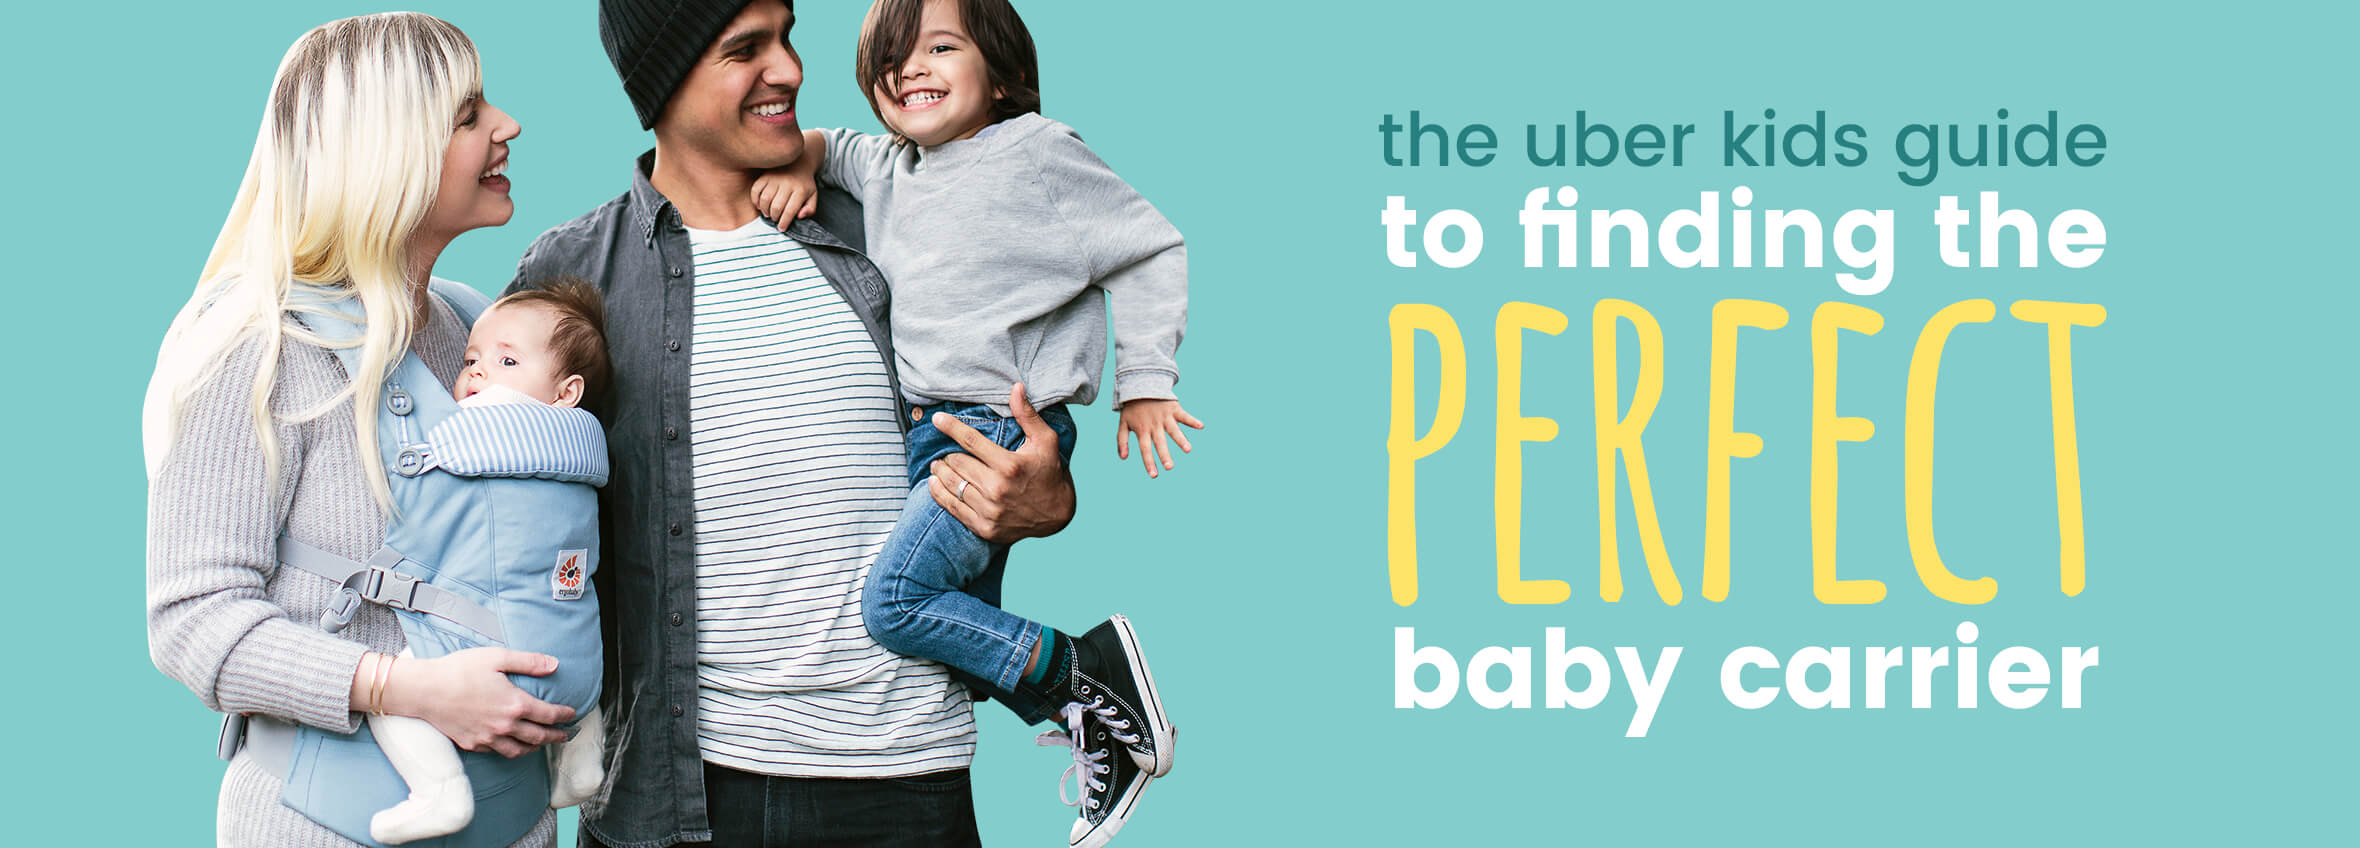 The Uber Kids guide to finding the perfect baby carrier